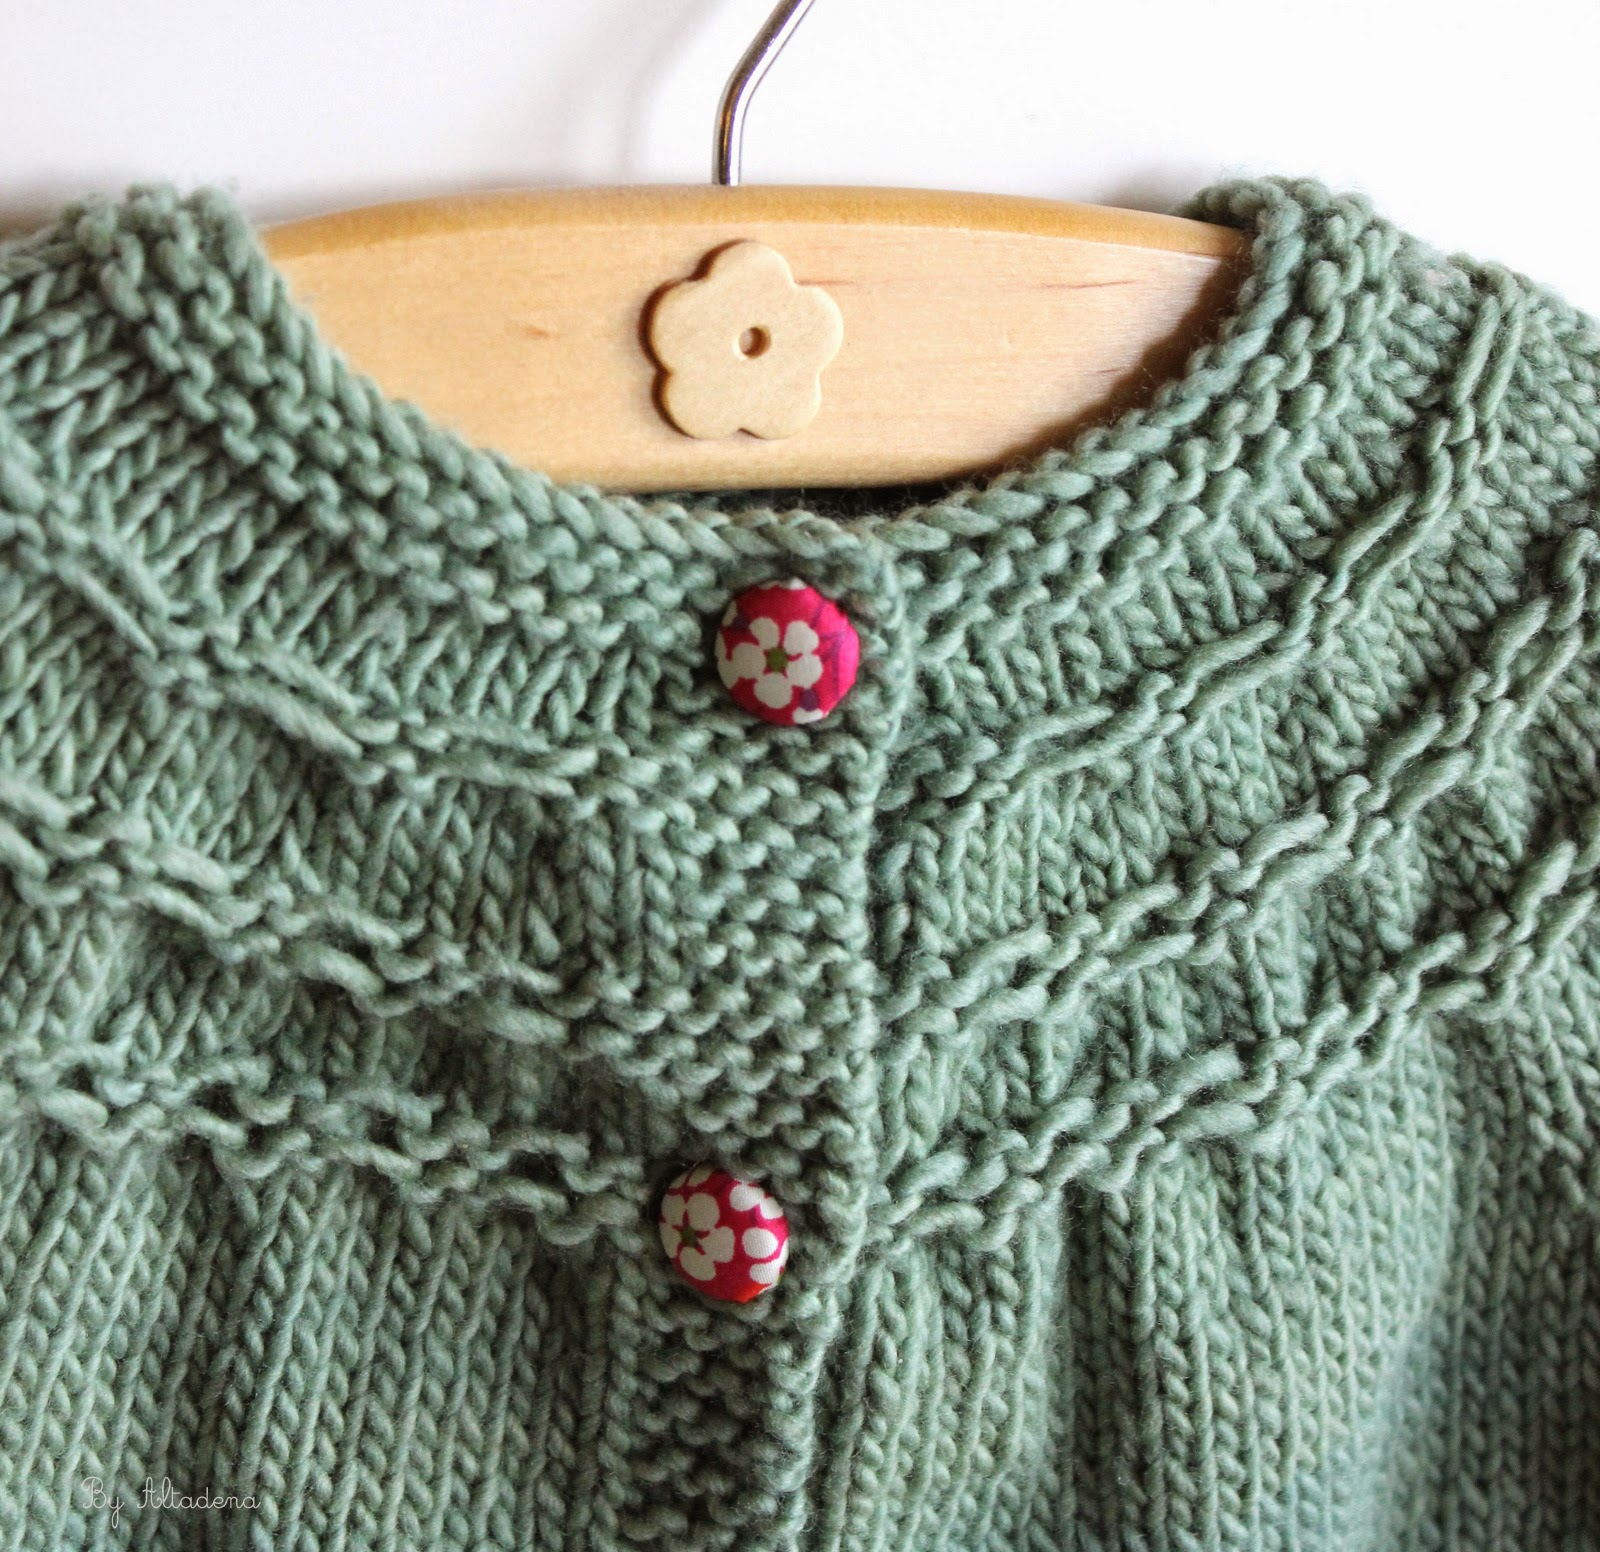 Knitting Pattern For Baby Seamless Yoked Sweater : Altadenas baby designs: Merry Christmas, part 3: Seamless Sweater